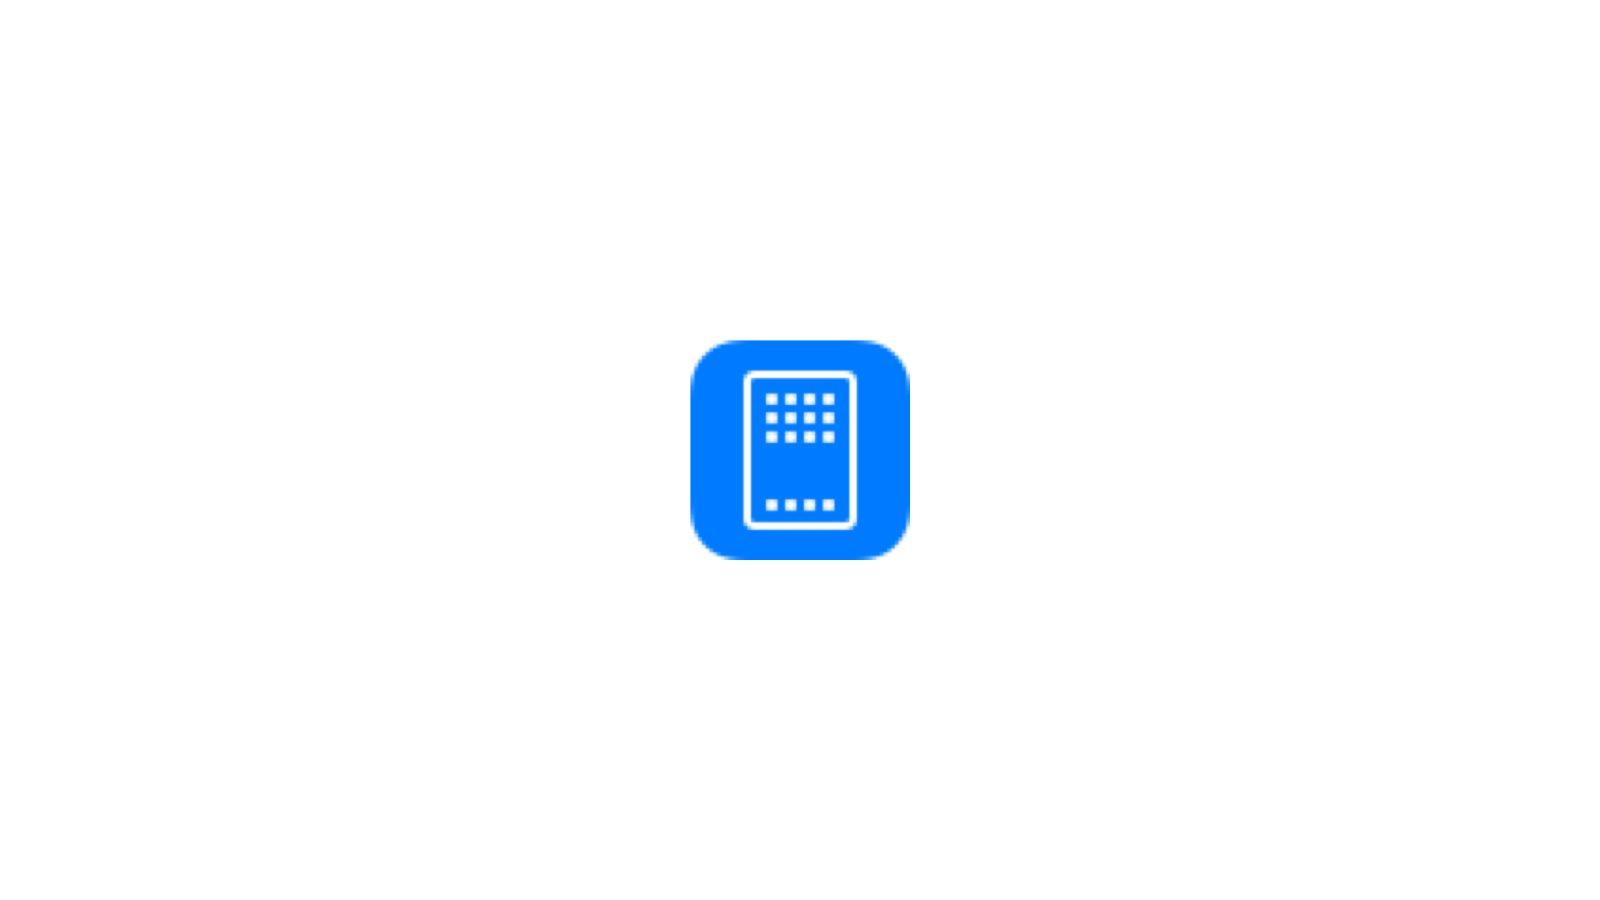 Icon Found In Ios 12 Shows Ipad With Thin Bezels No Home Button Or